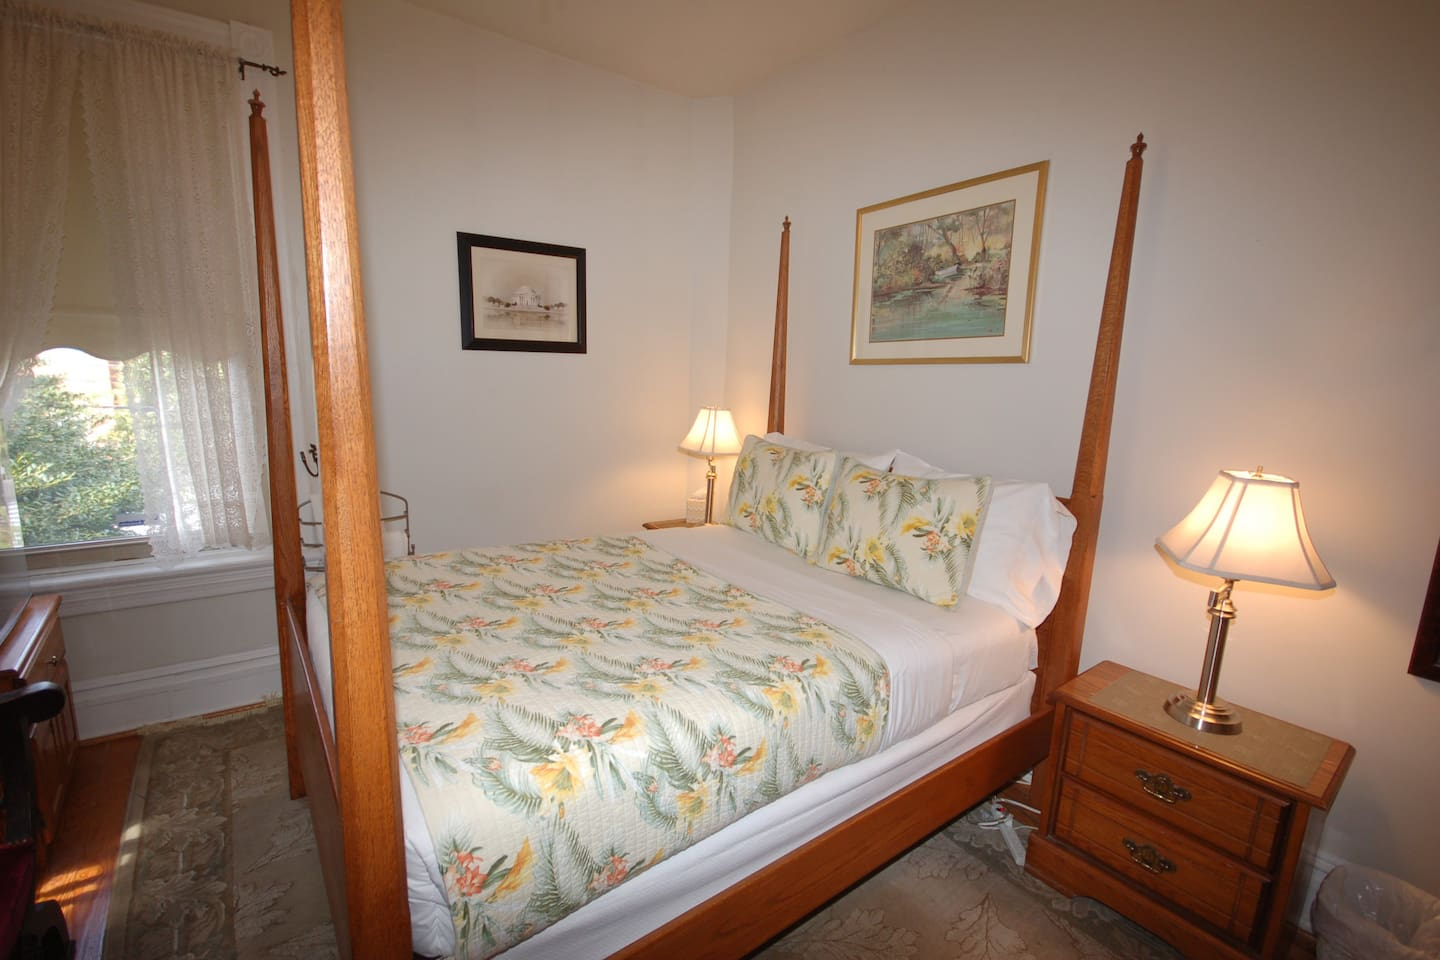 Pembroke Room at Cardozo Guesthouse - bright and welcoming